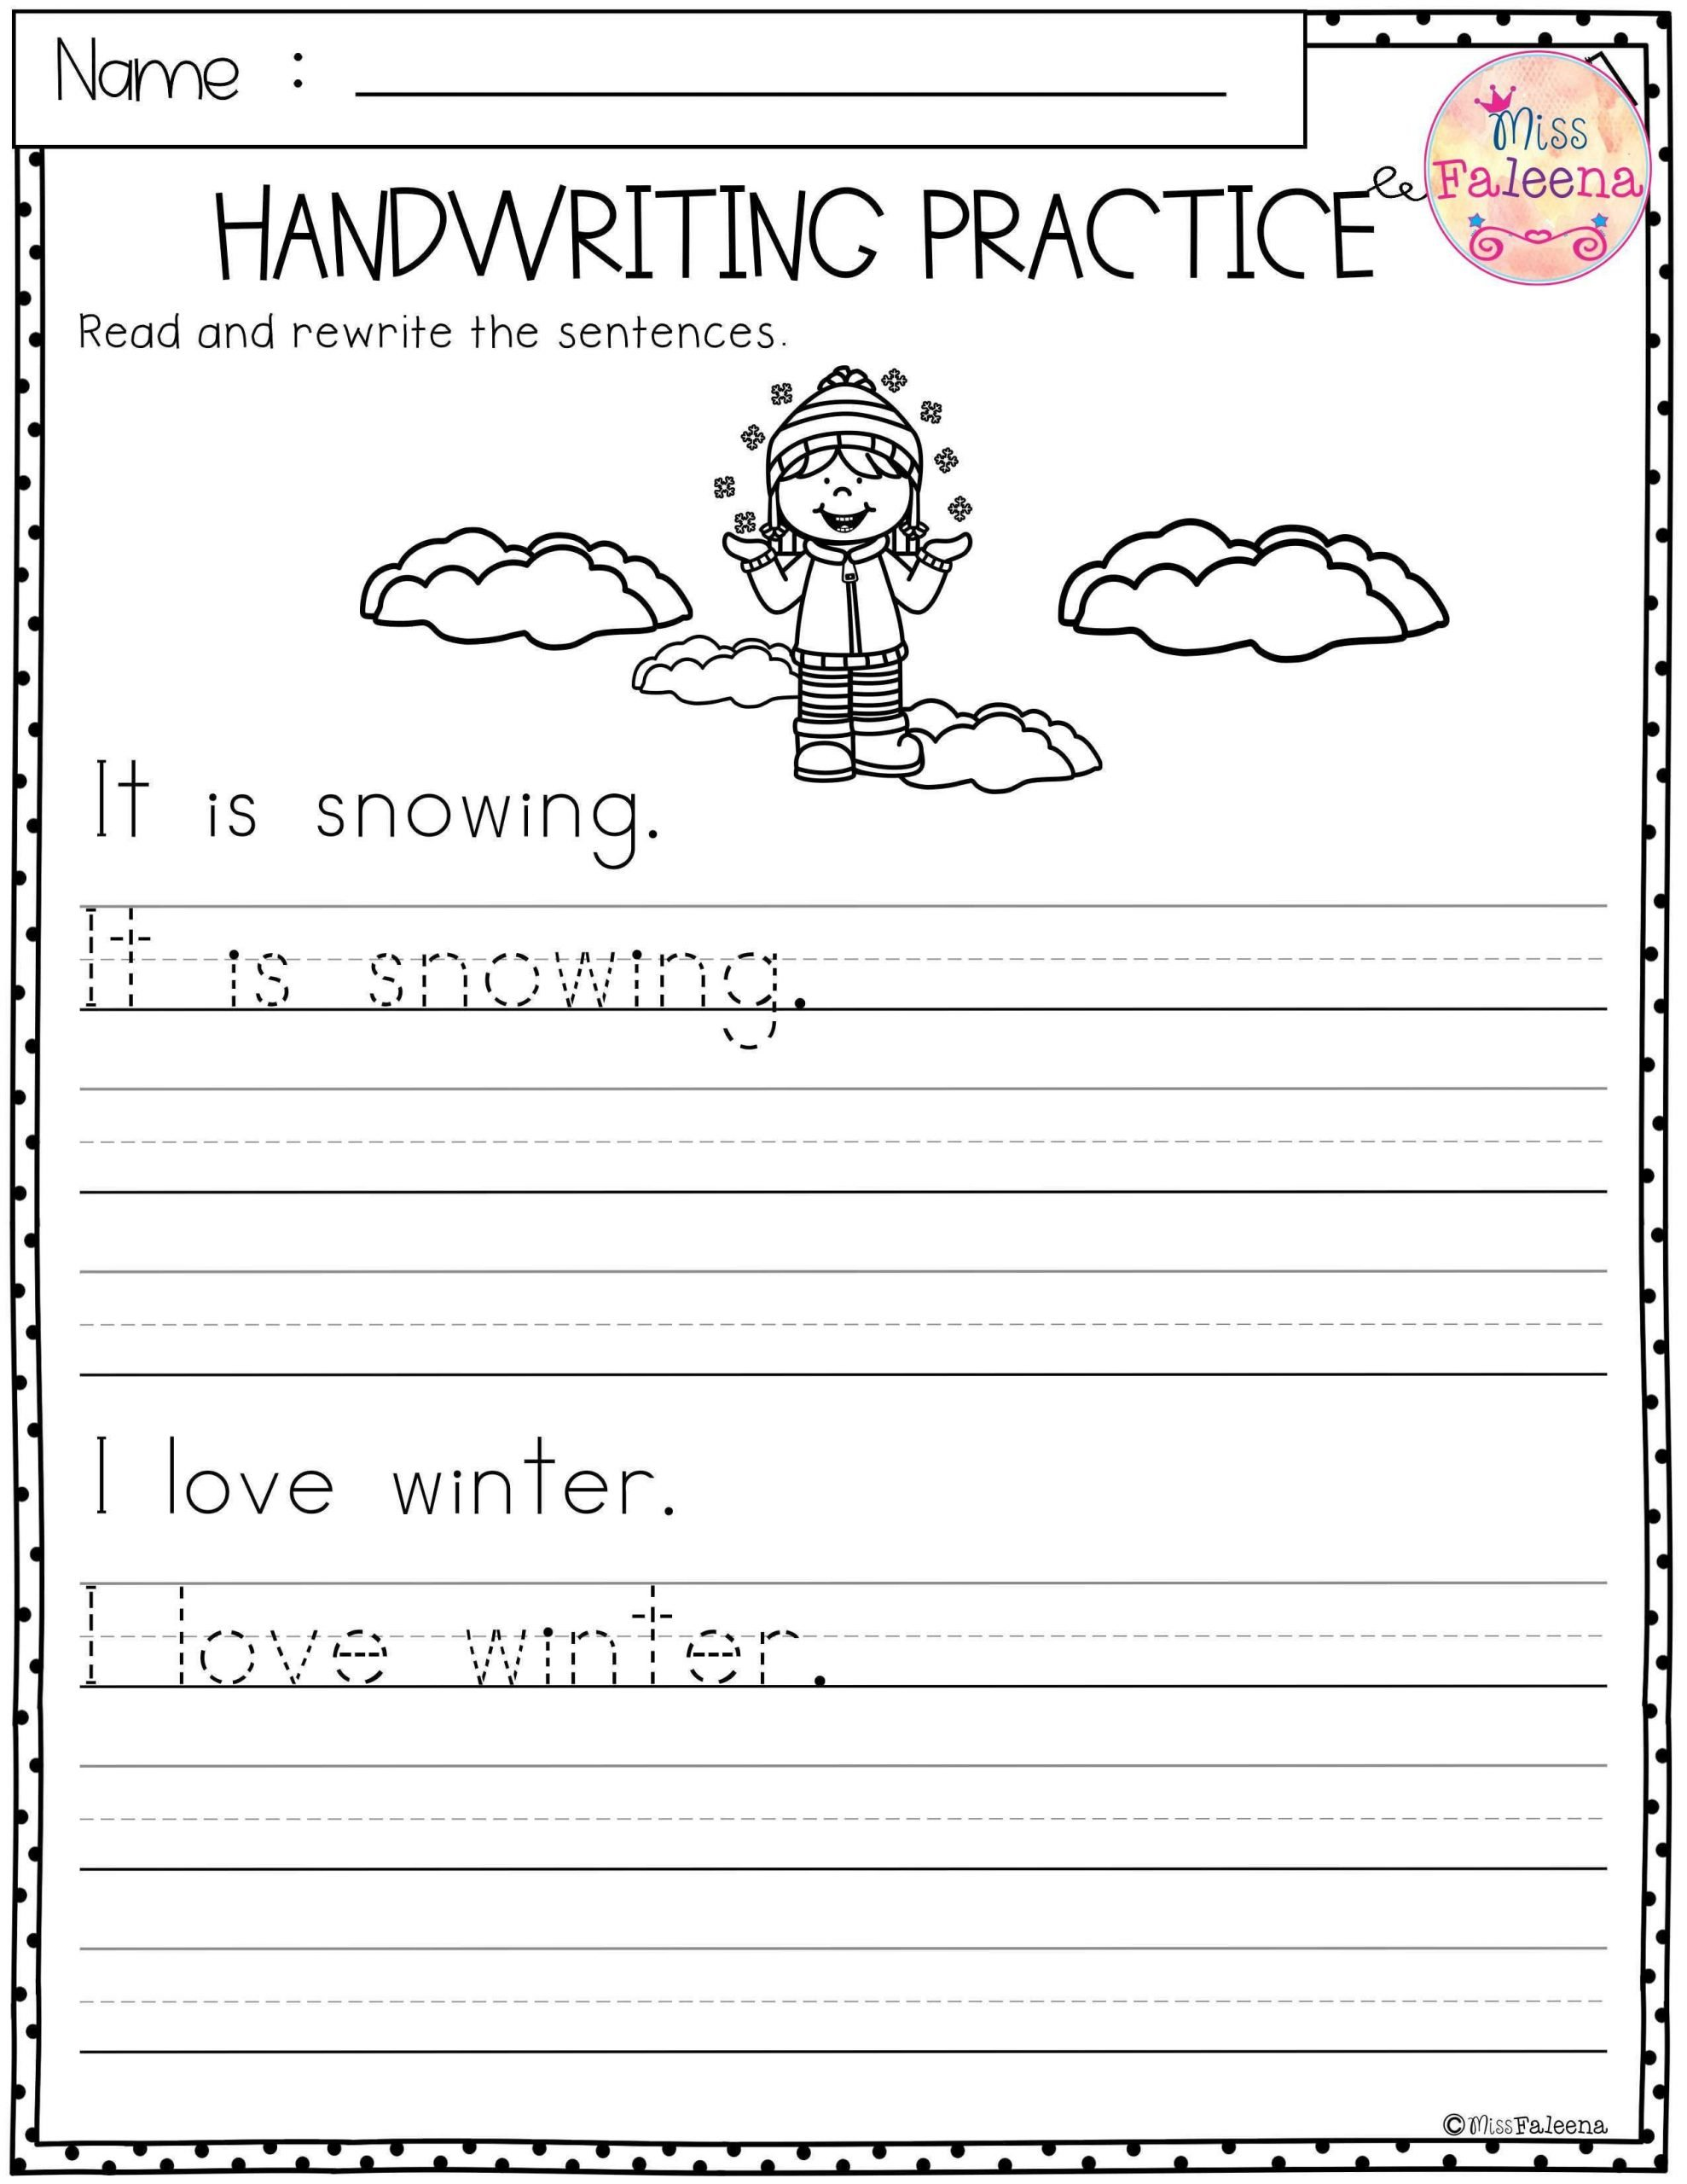 Handwriting Analysis Worksheet Winter Handwriting Practice This Product Has 20 Pages Of